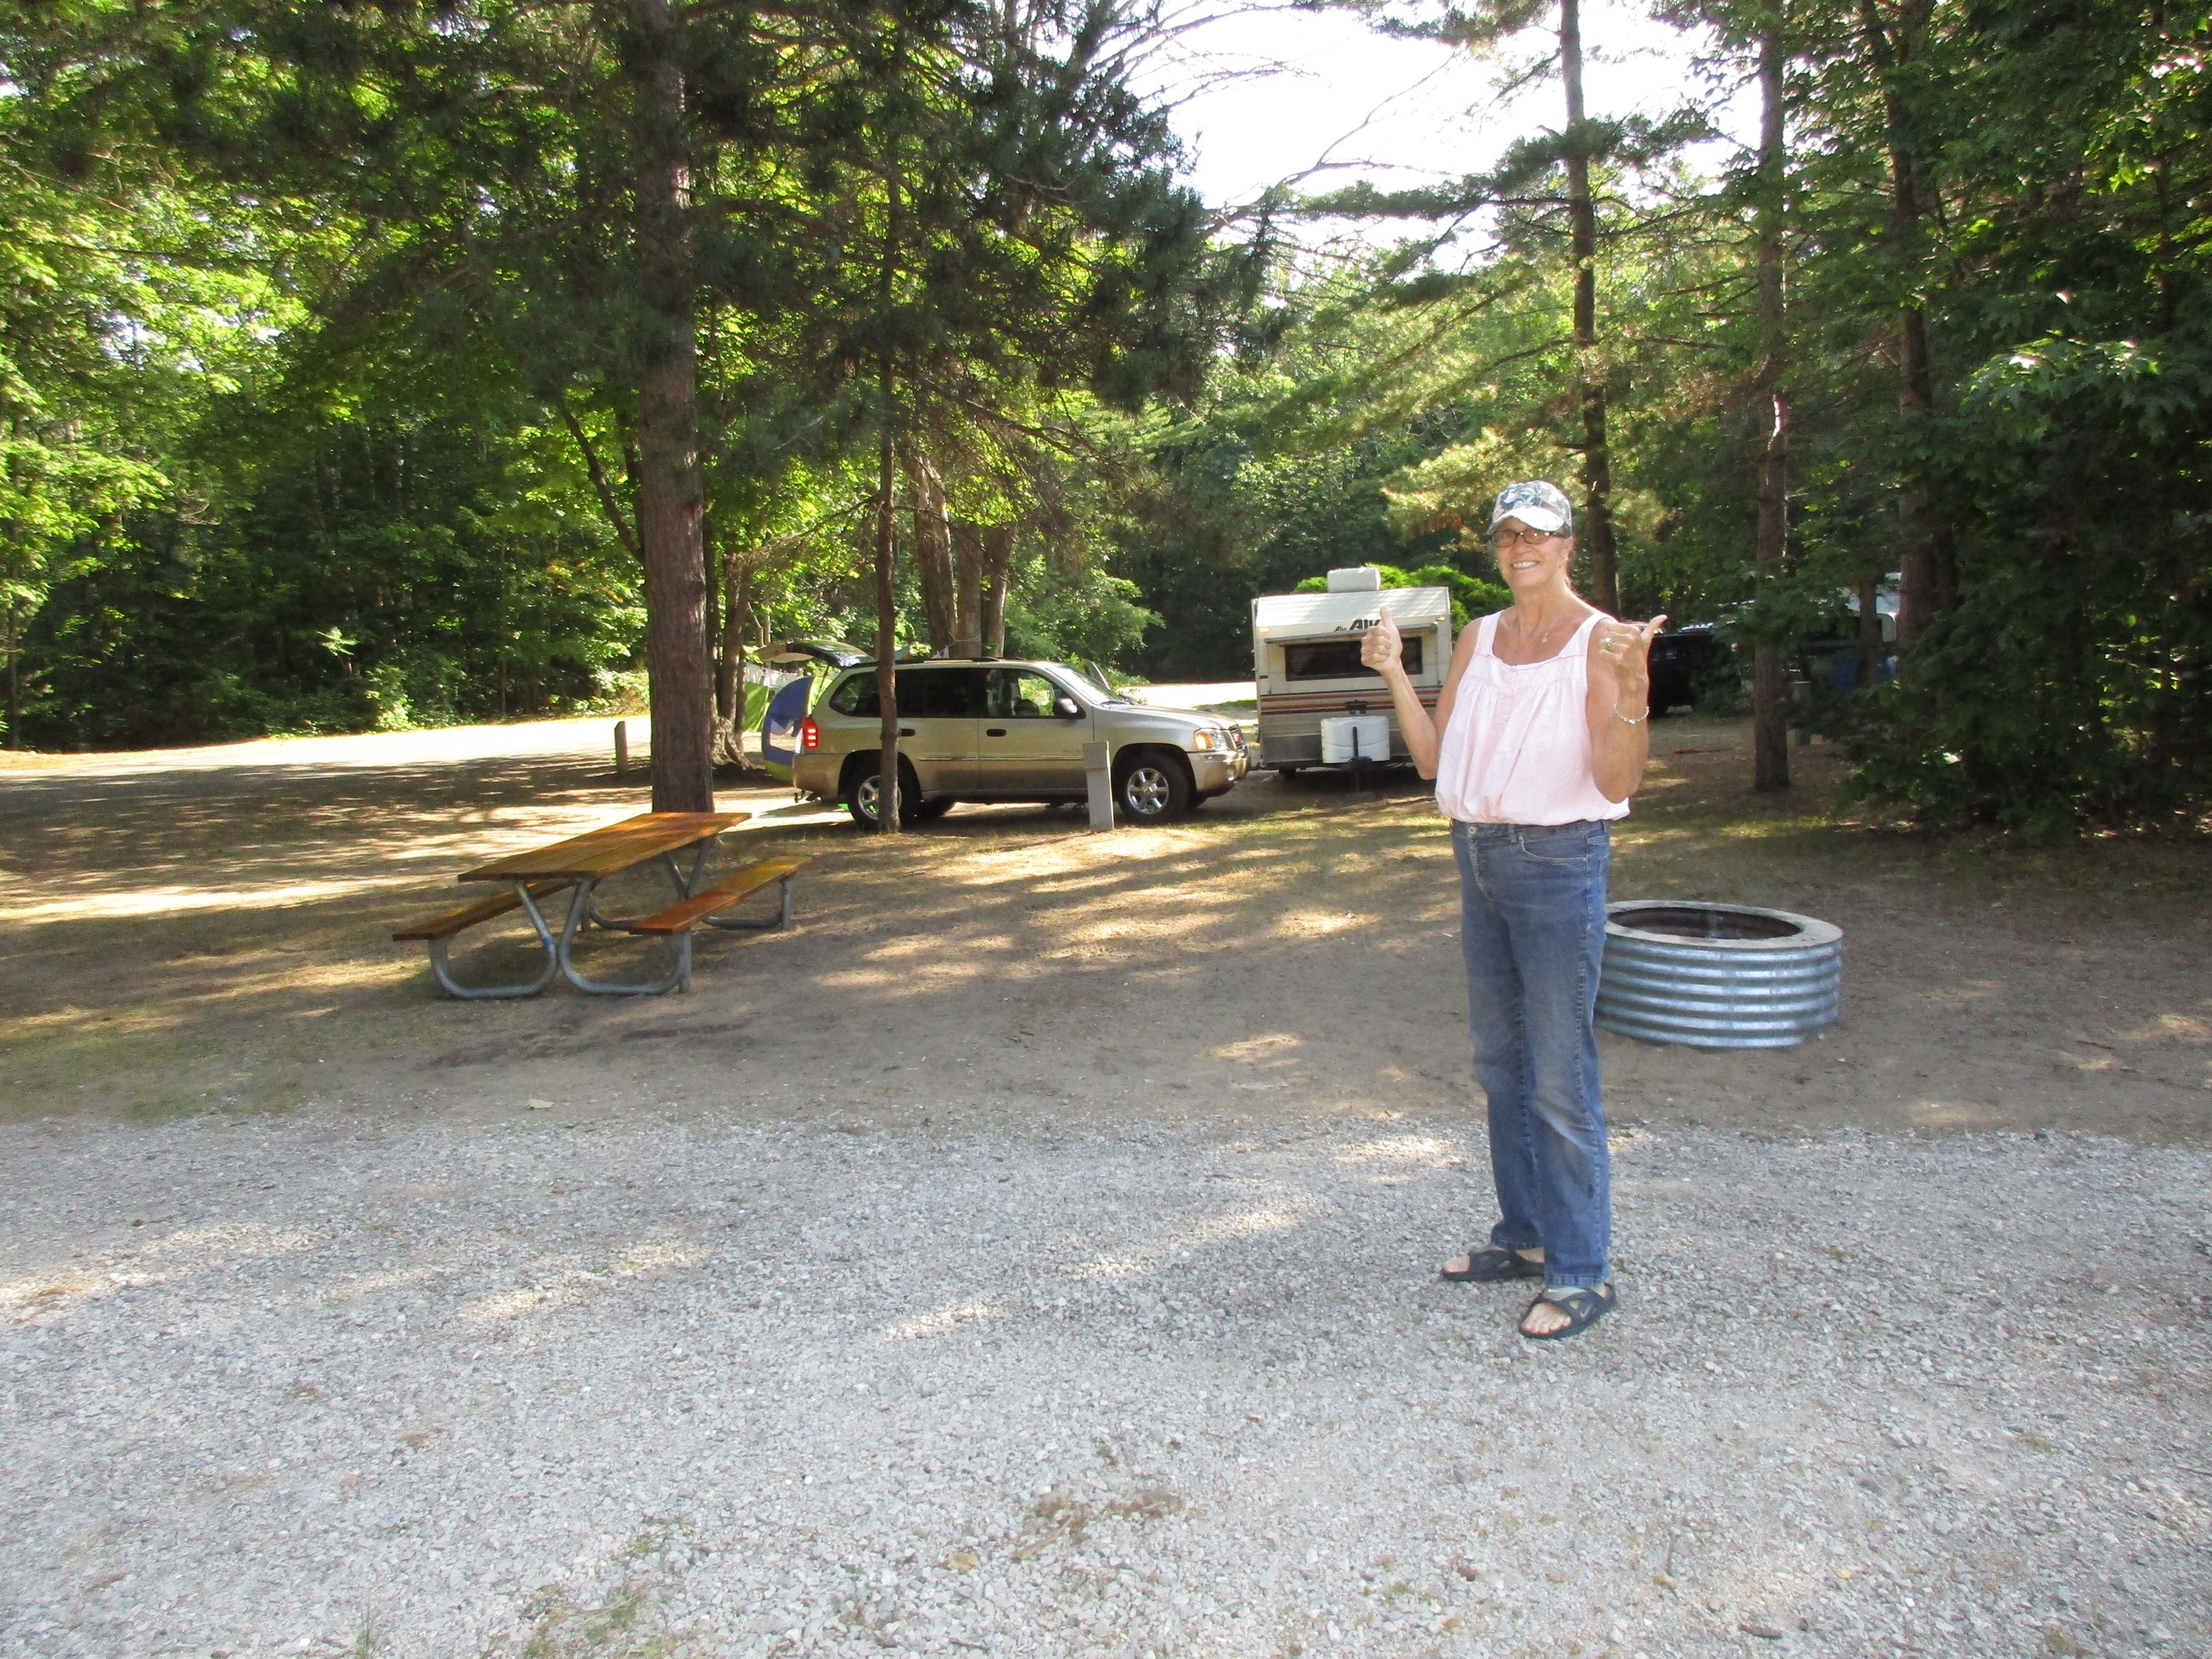 Day 57, July 26 - Petoskey State Park to Eastport, Barnes ...